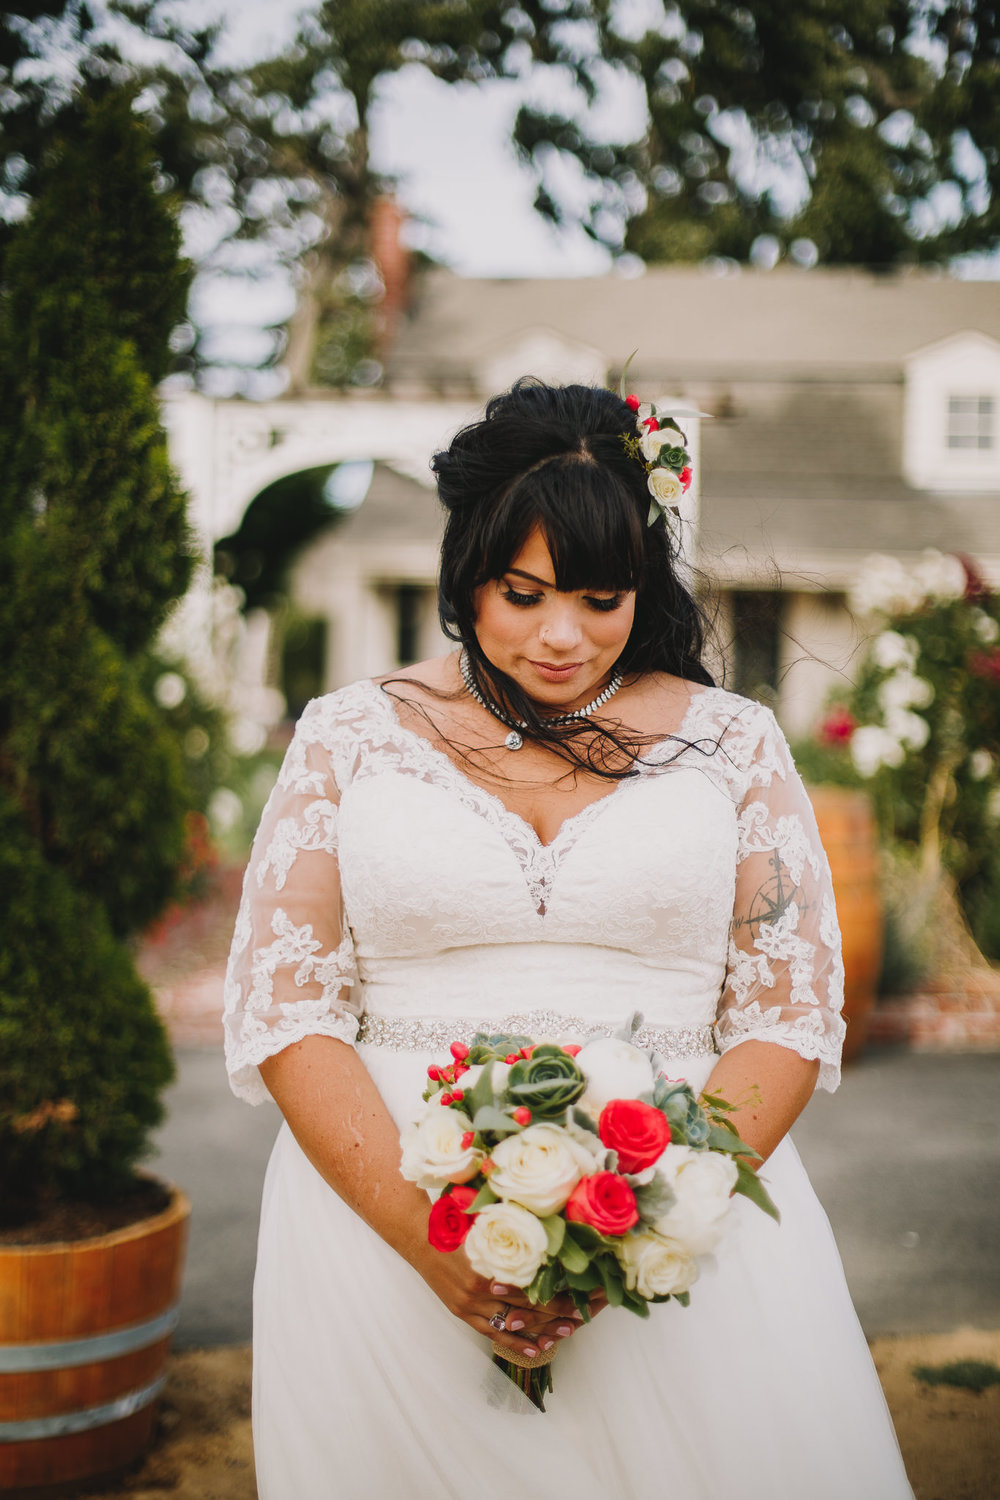 Archer Inspired Photography Fitz Place San Martin Wedding Lifestyle Documentary Affordable Photographer South Bay-330.jpg